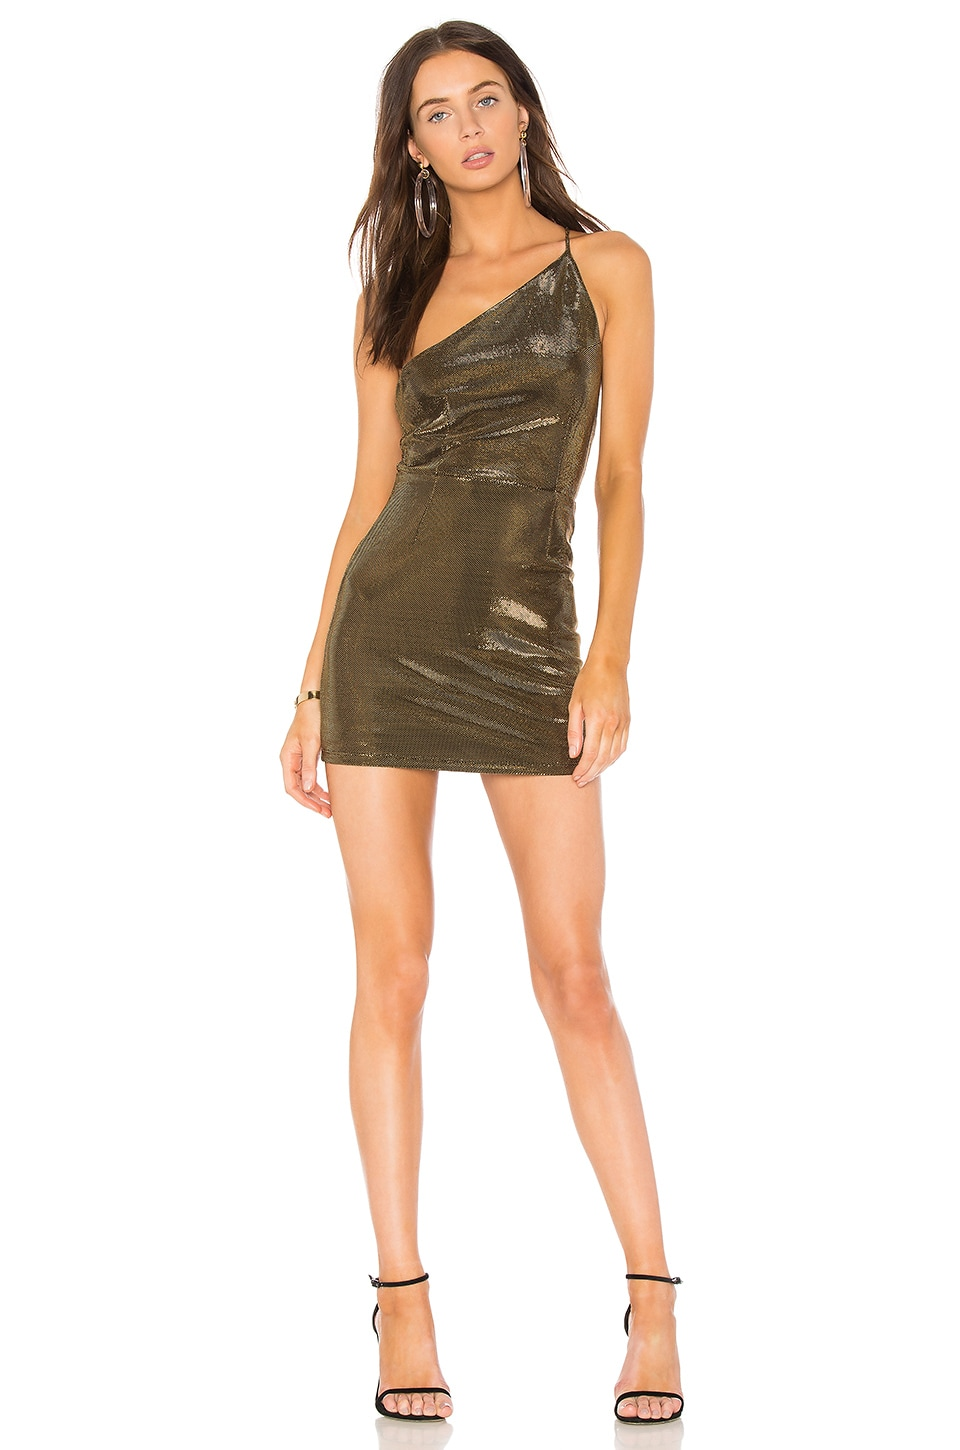 h:ours x REVOLVE Gyada Dress in Bronze